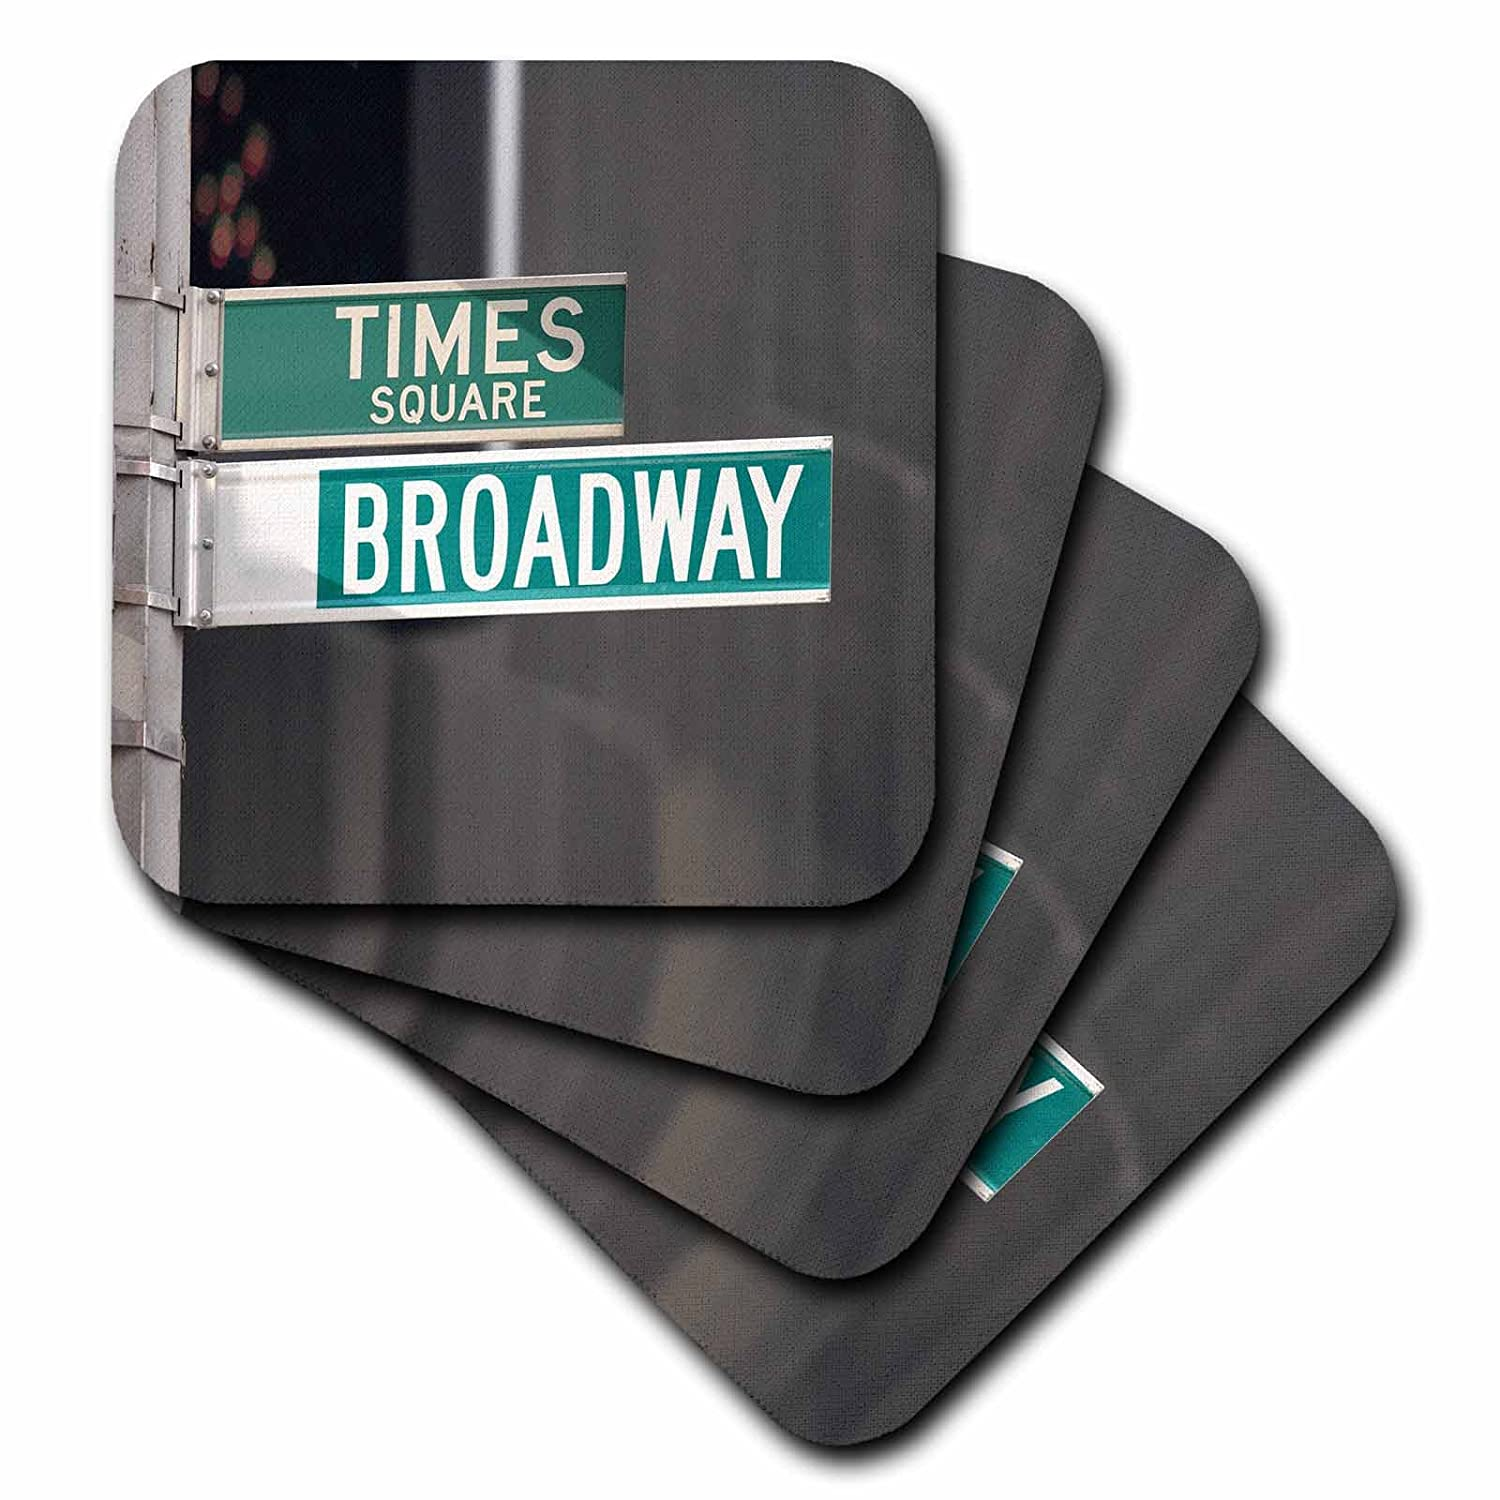 Set of 8 3dRose cst/_4393/_2 Times Square Broadway Soft Coasters